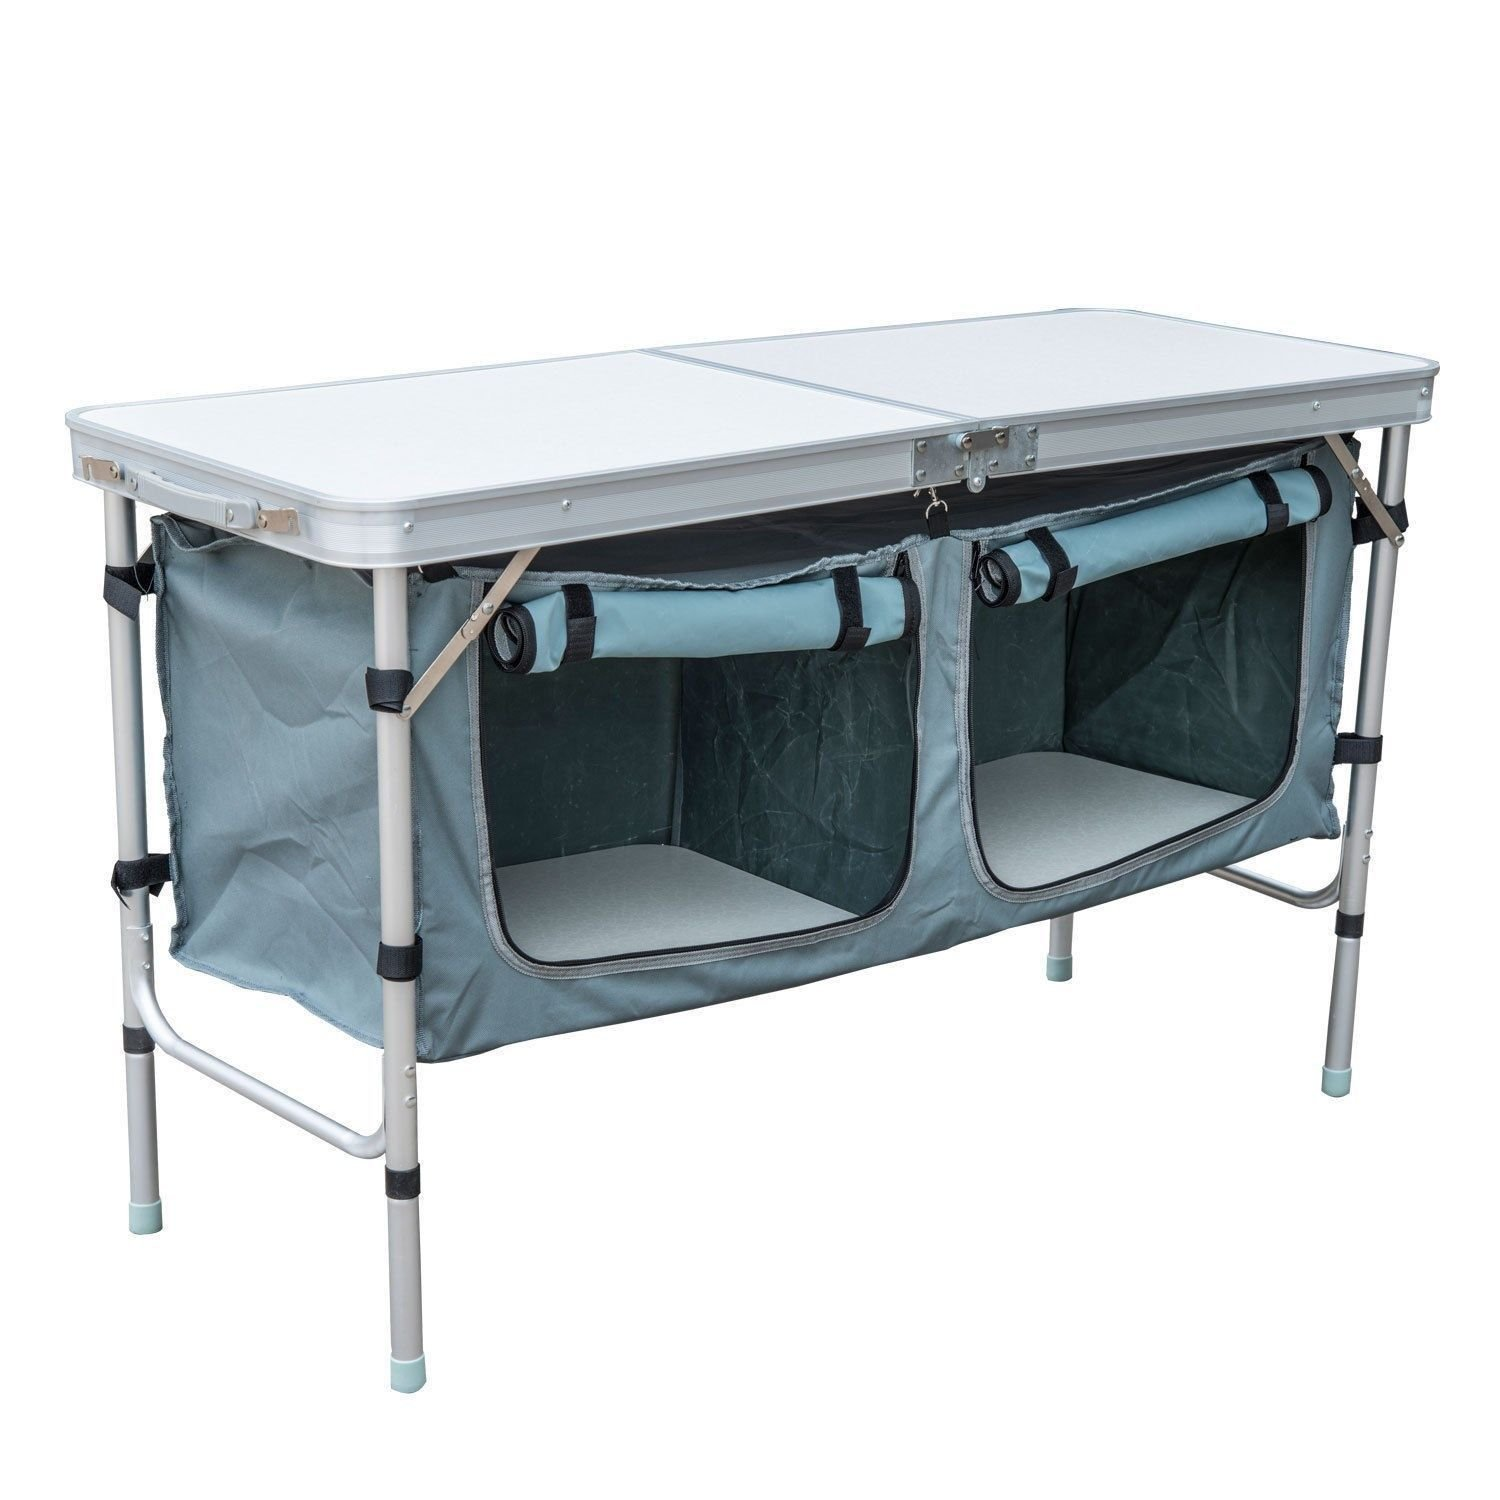 Clever Market Outdoor Camping Folding Table Comfort Portable Durable Aluminium Kitchen Picnic Cabinet Solid Comfortable Barbeque Tabletops Storage Organizer 48""